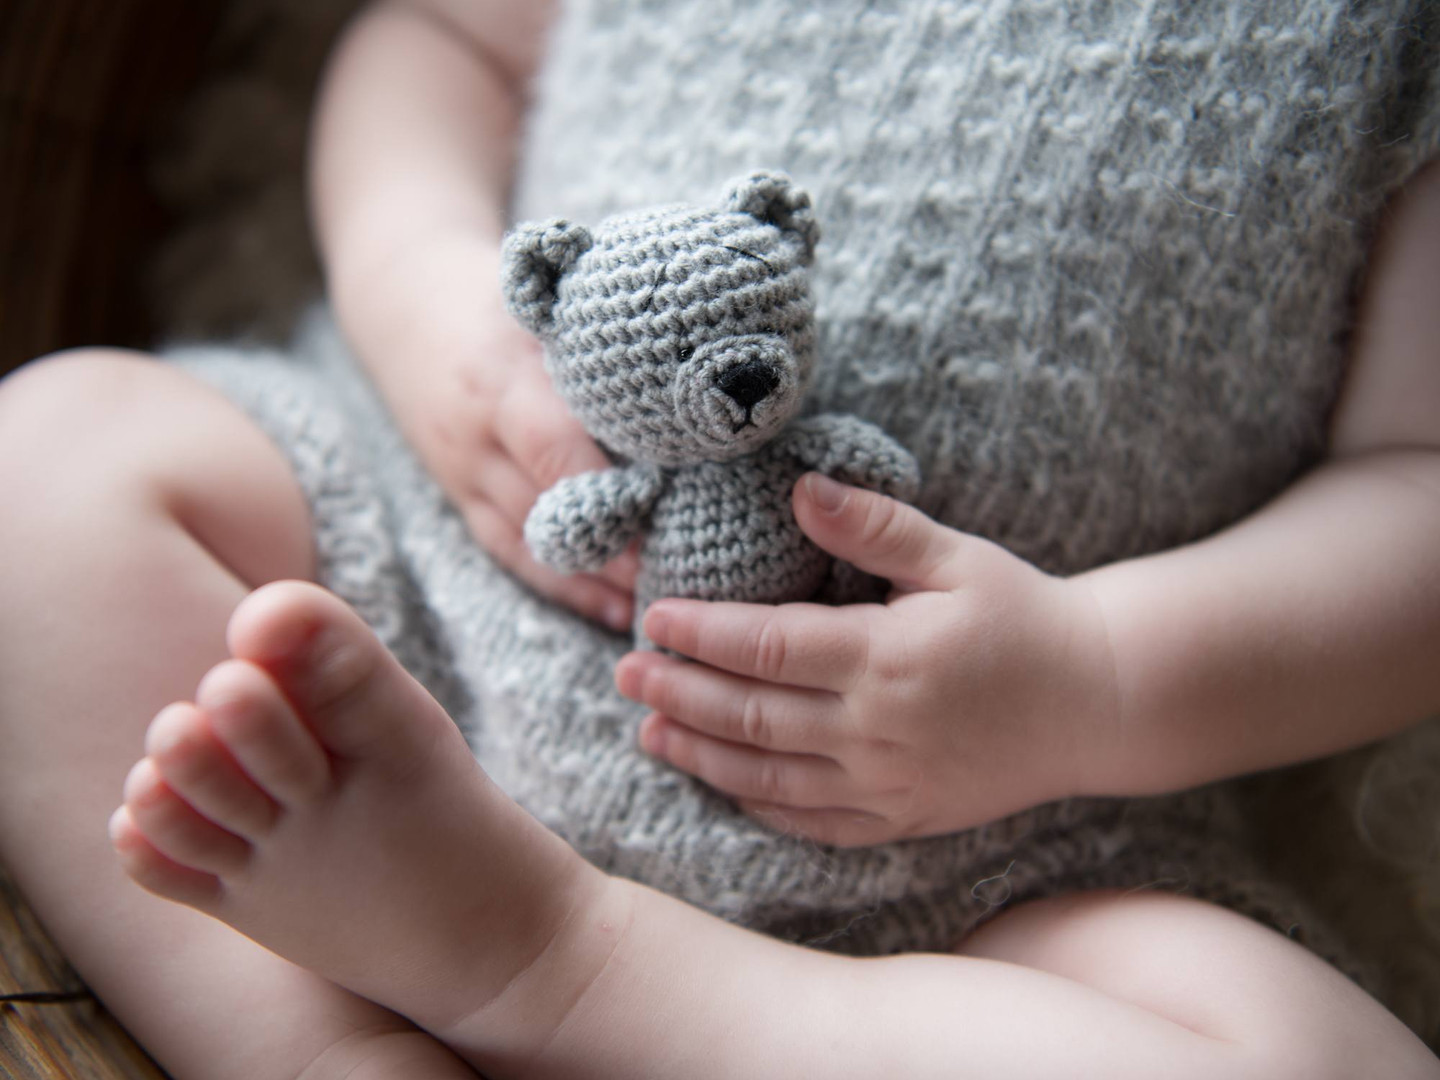 Close-up portrait photograph of a baby's hands and feet, holding a crochet teddy bear